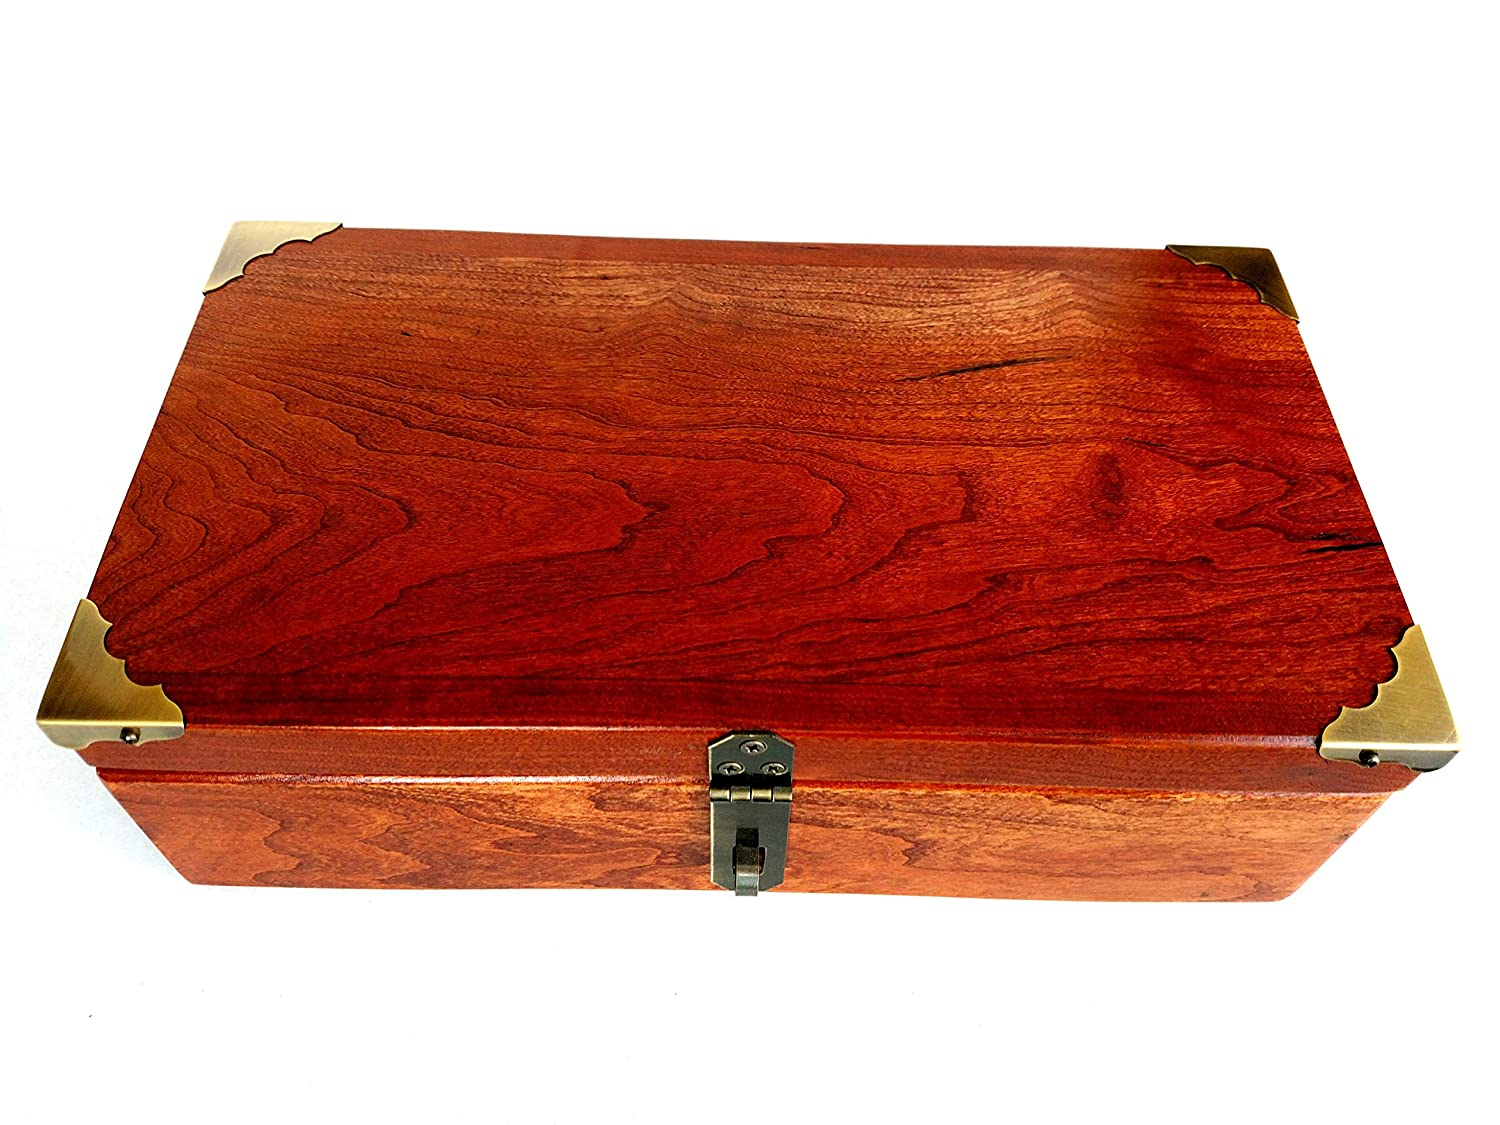 Cherry Japan's largest assortment Max 72% OFF Valet Box with Stash Lid or